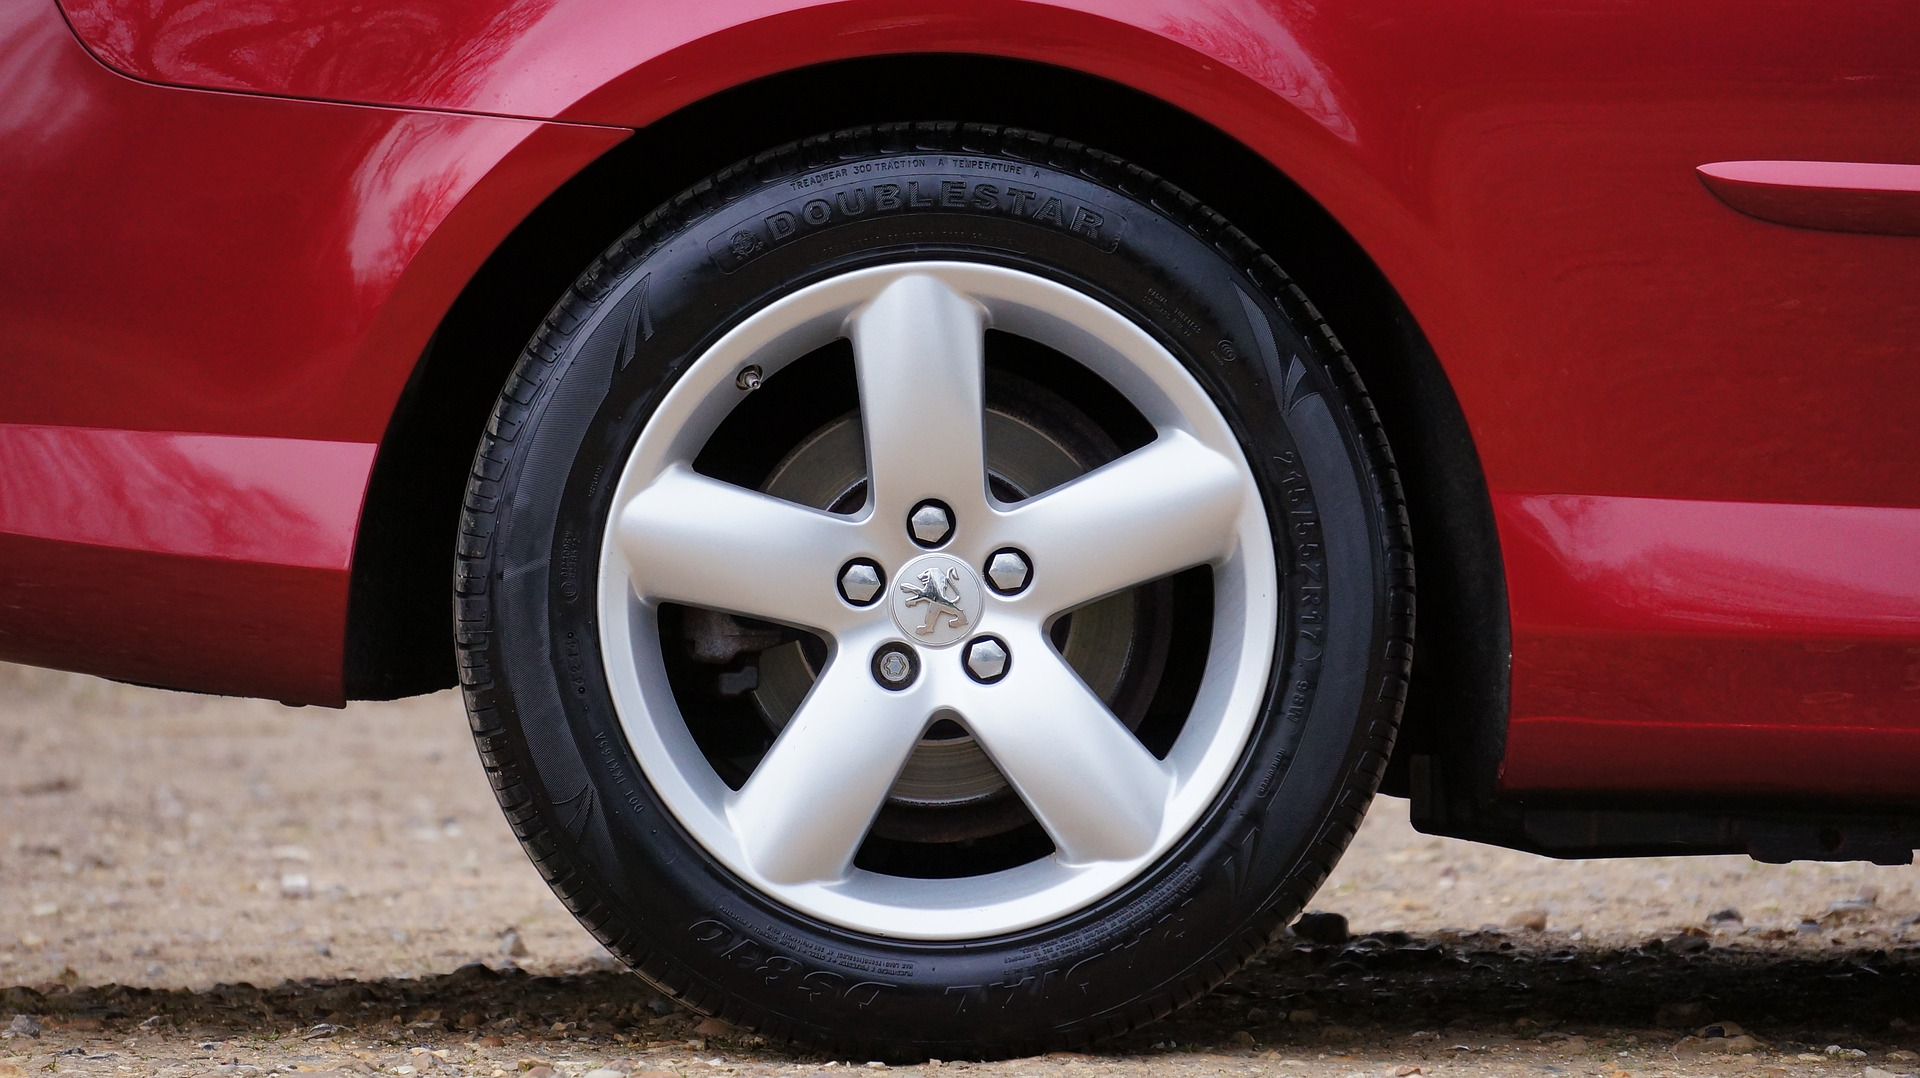 Red Peugeot car wheel with logo